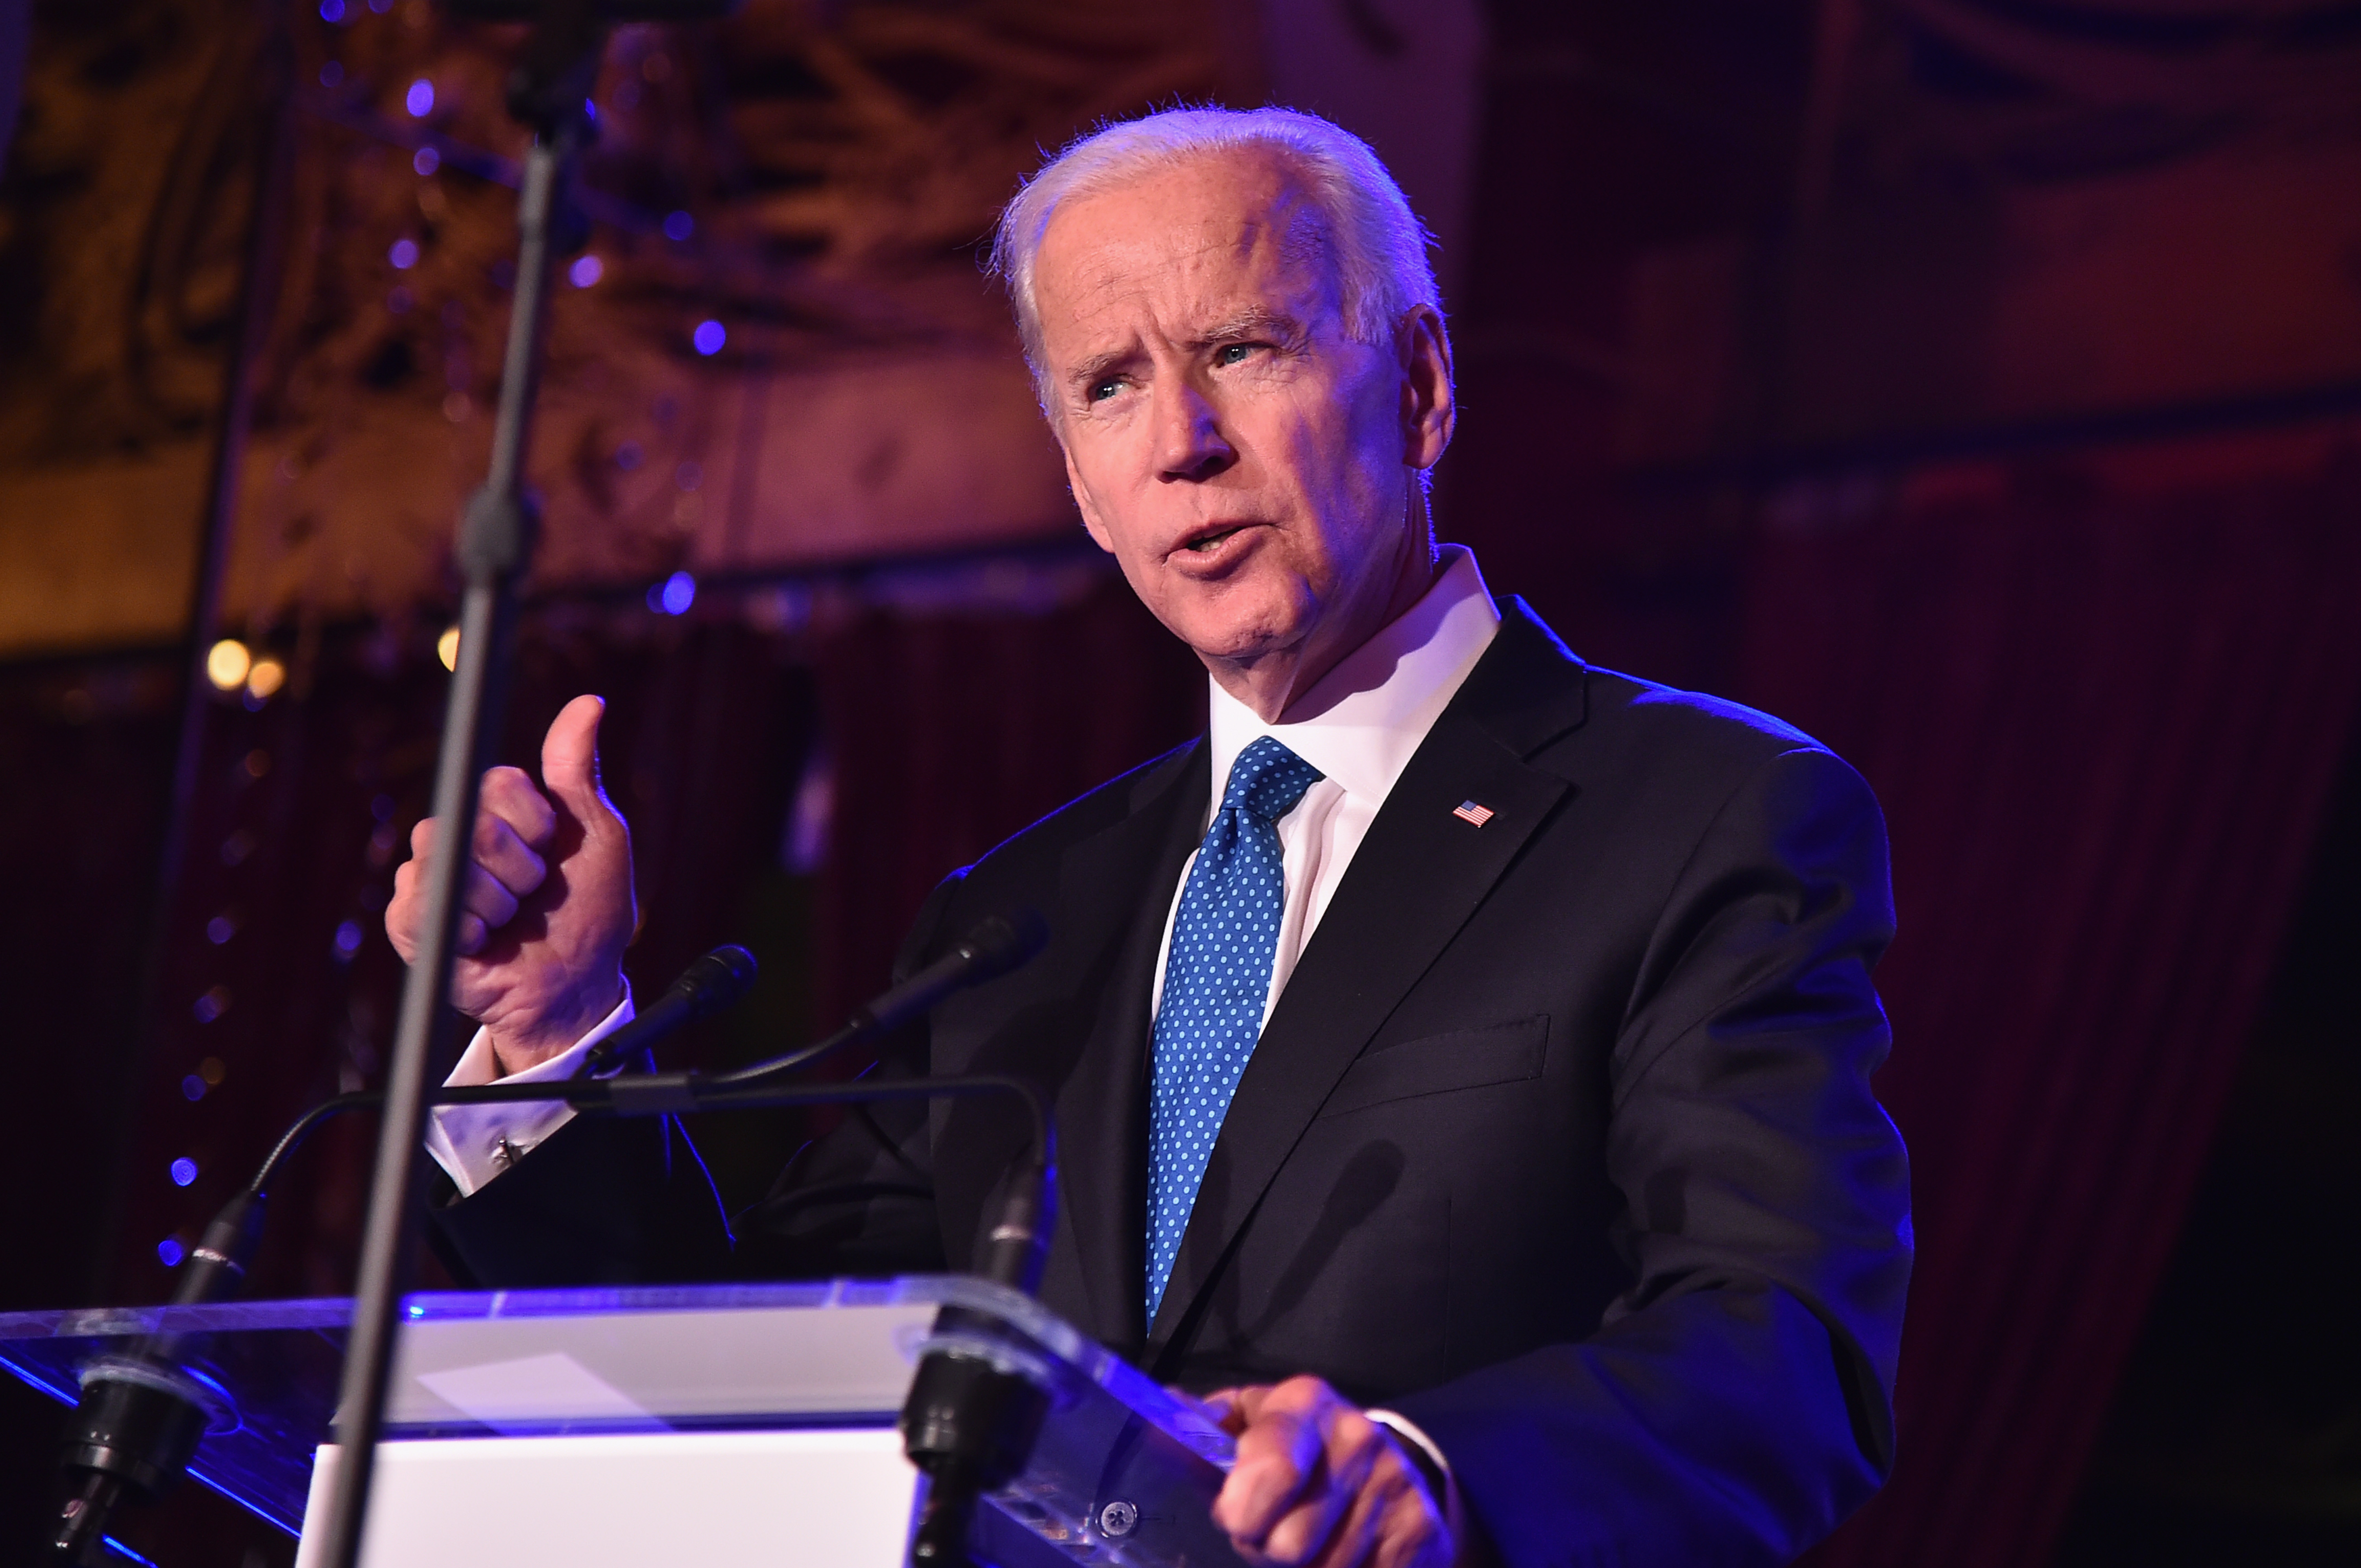 Former U.S. Vice President Joe Biden speaks onstage at the Biden Courage Awards Presented by It's On Us at the Russian Tea Room on April 18, 2018 in New York City. (Getty Images)